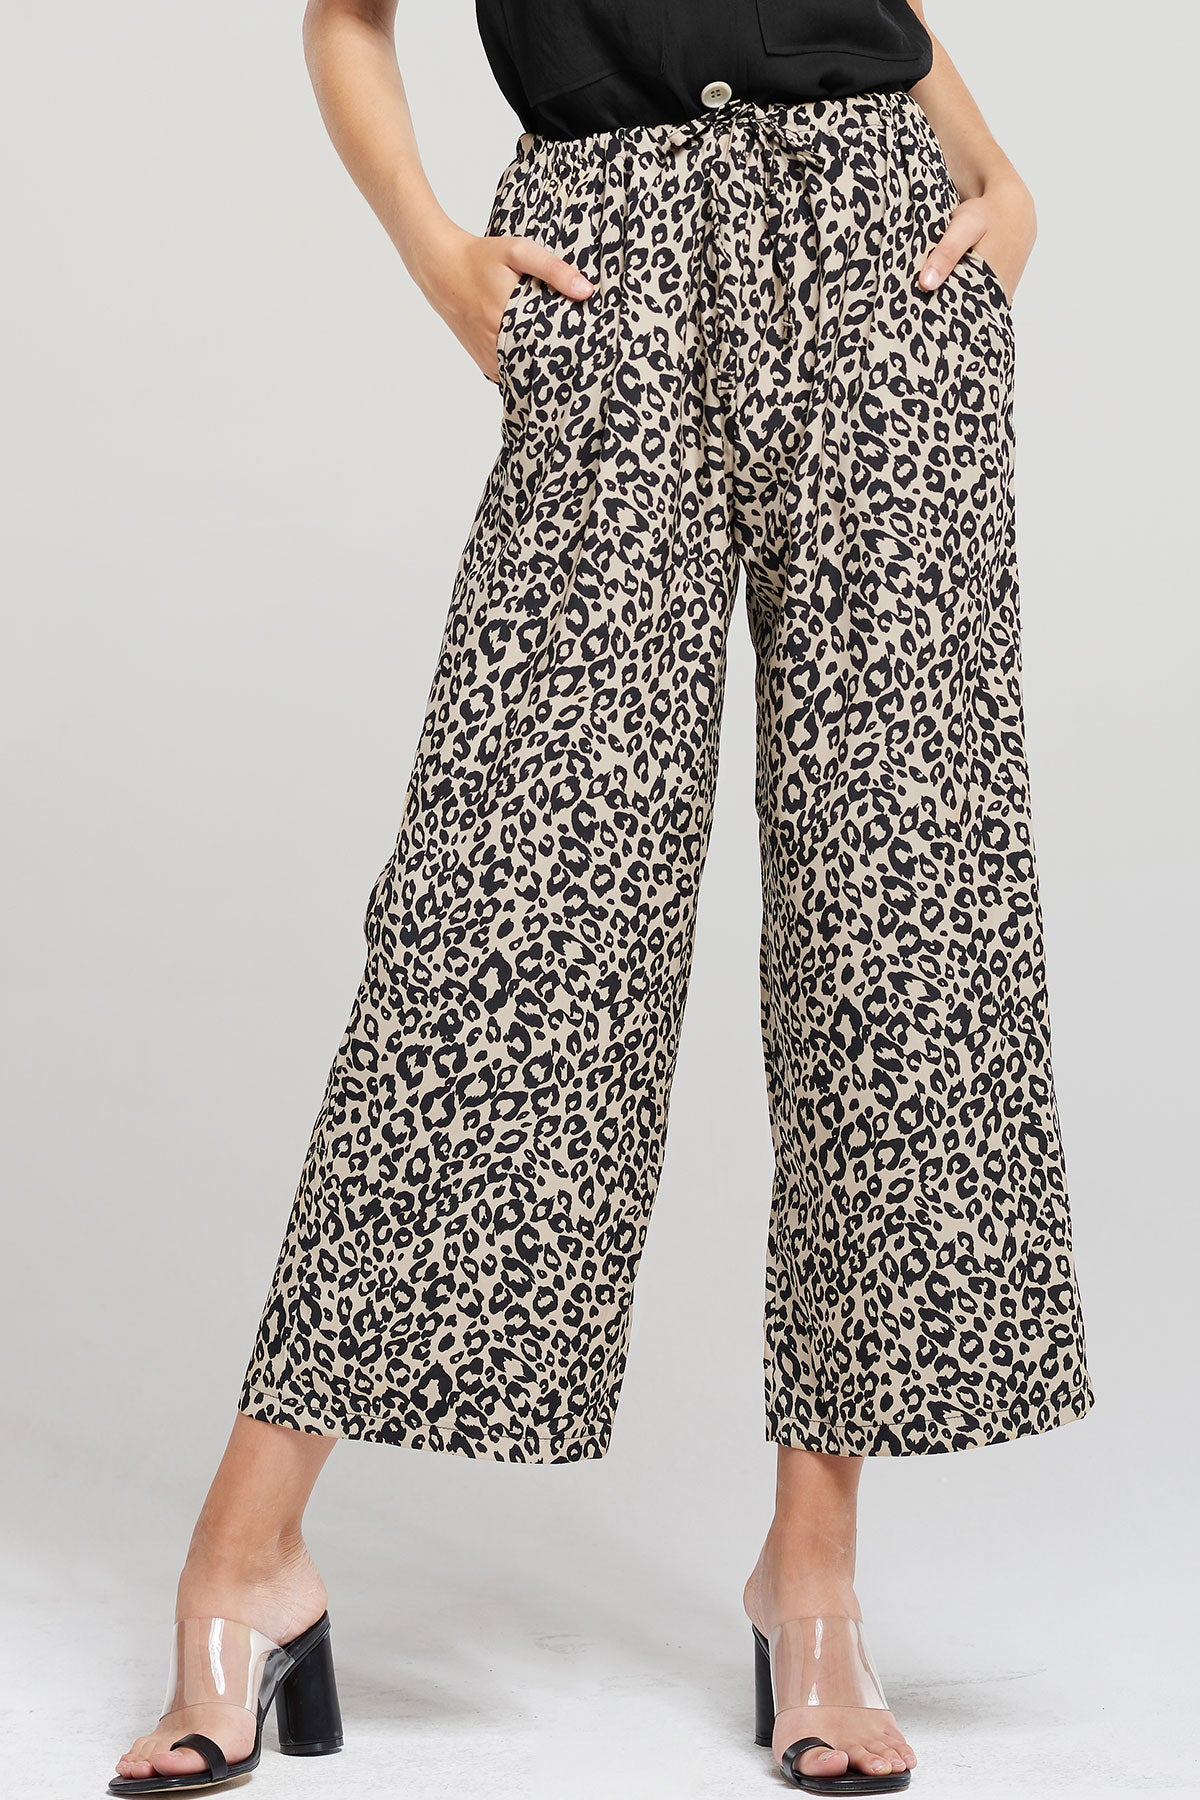 Sasha Leopard Print Long Pants